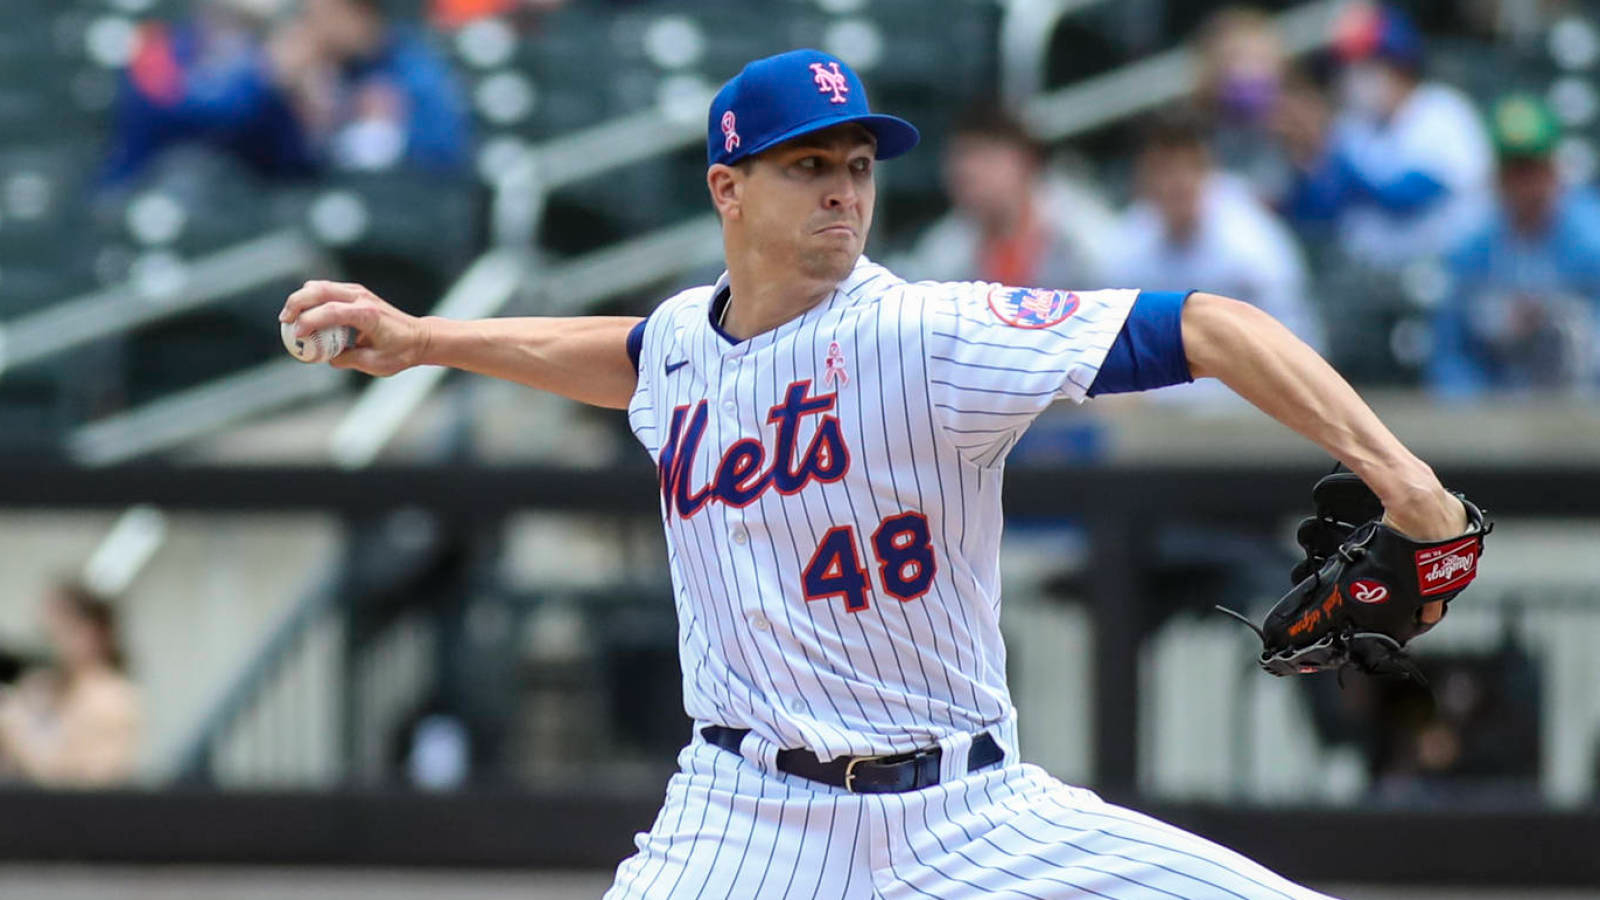 Mets' ace Jacob deGrom rides his repertoire to the top of the NL MVP lists